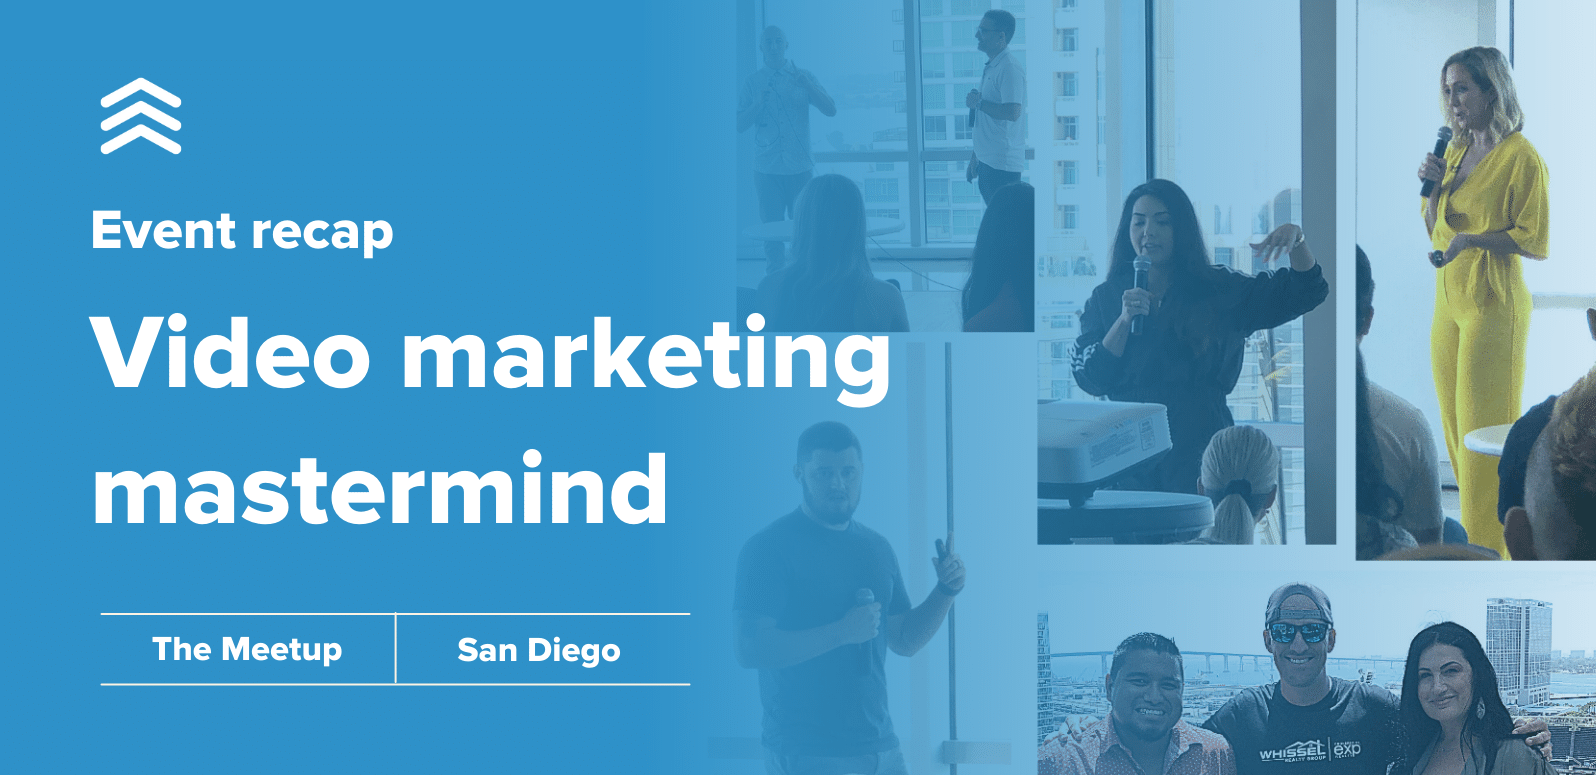 Event recap from video marketing mastermind: The Meetup